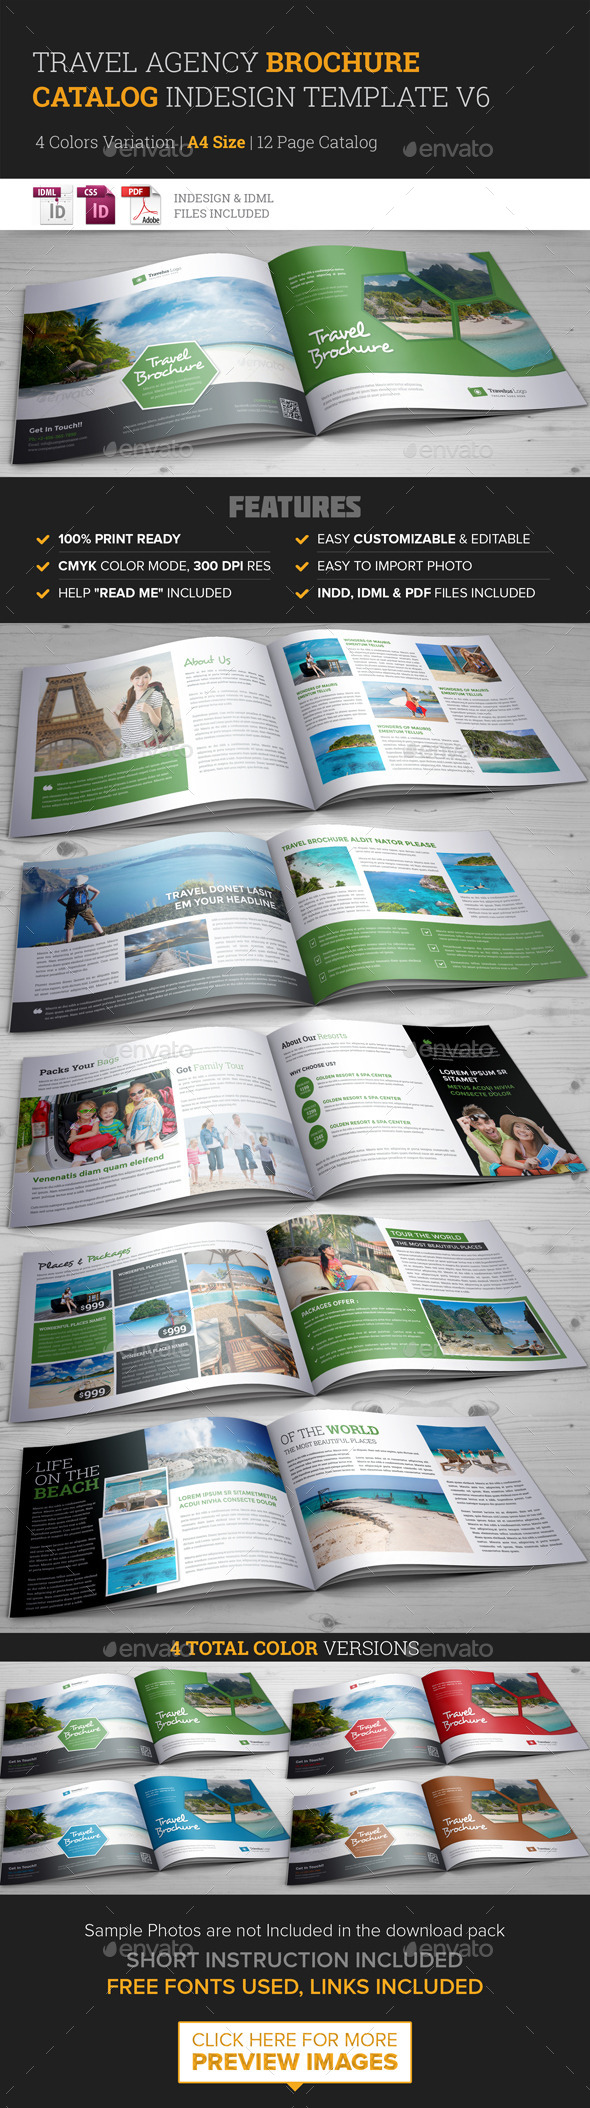 GraphicRiver Travel Agency Brochure Catalog InDesign Template 3 11614826